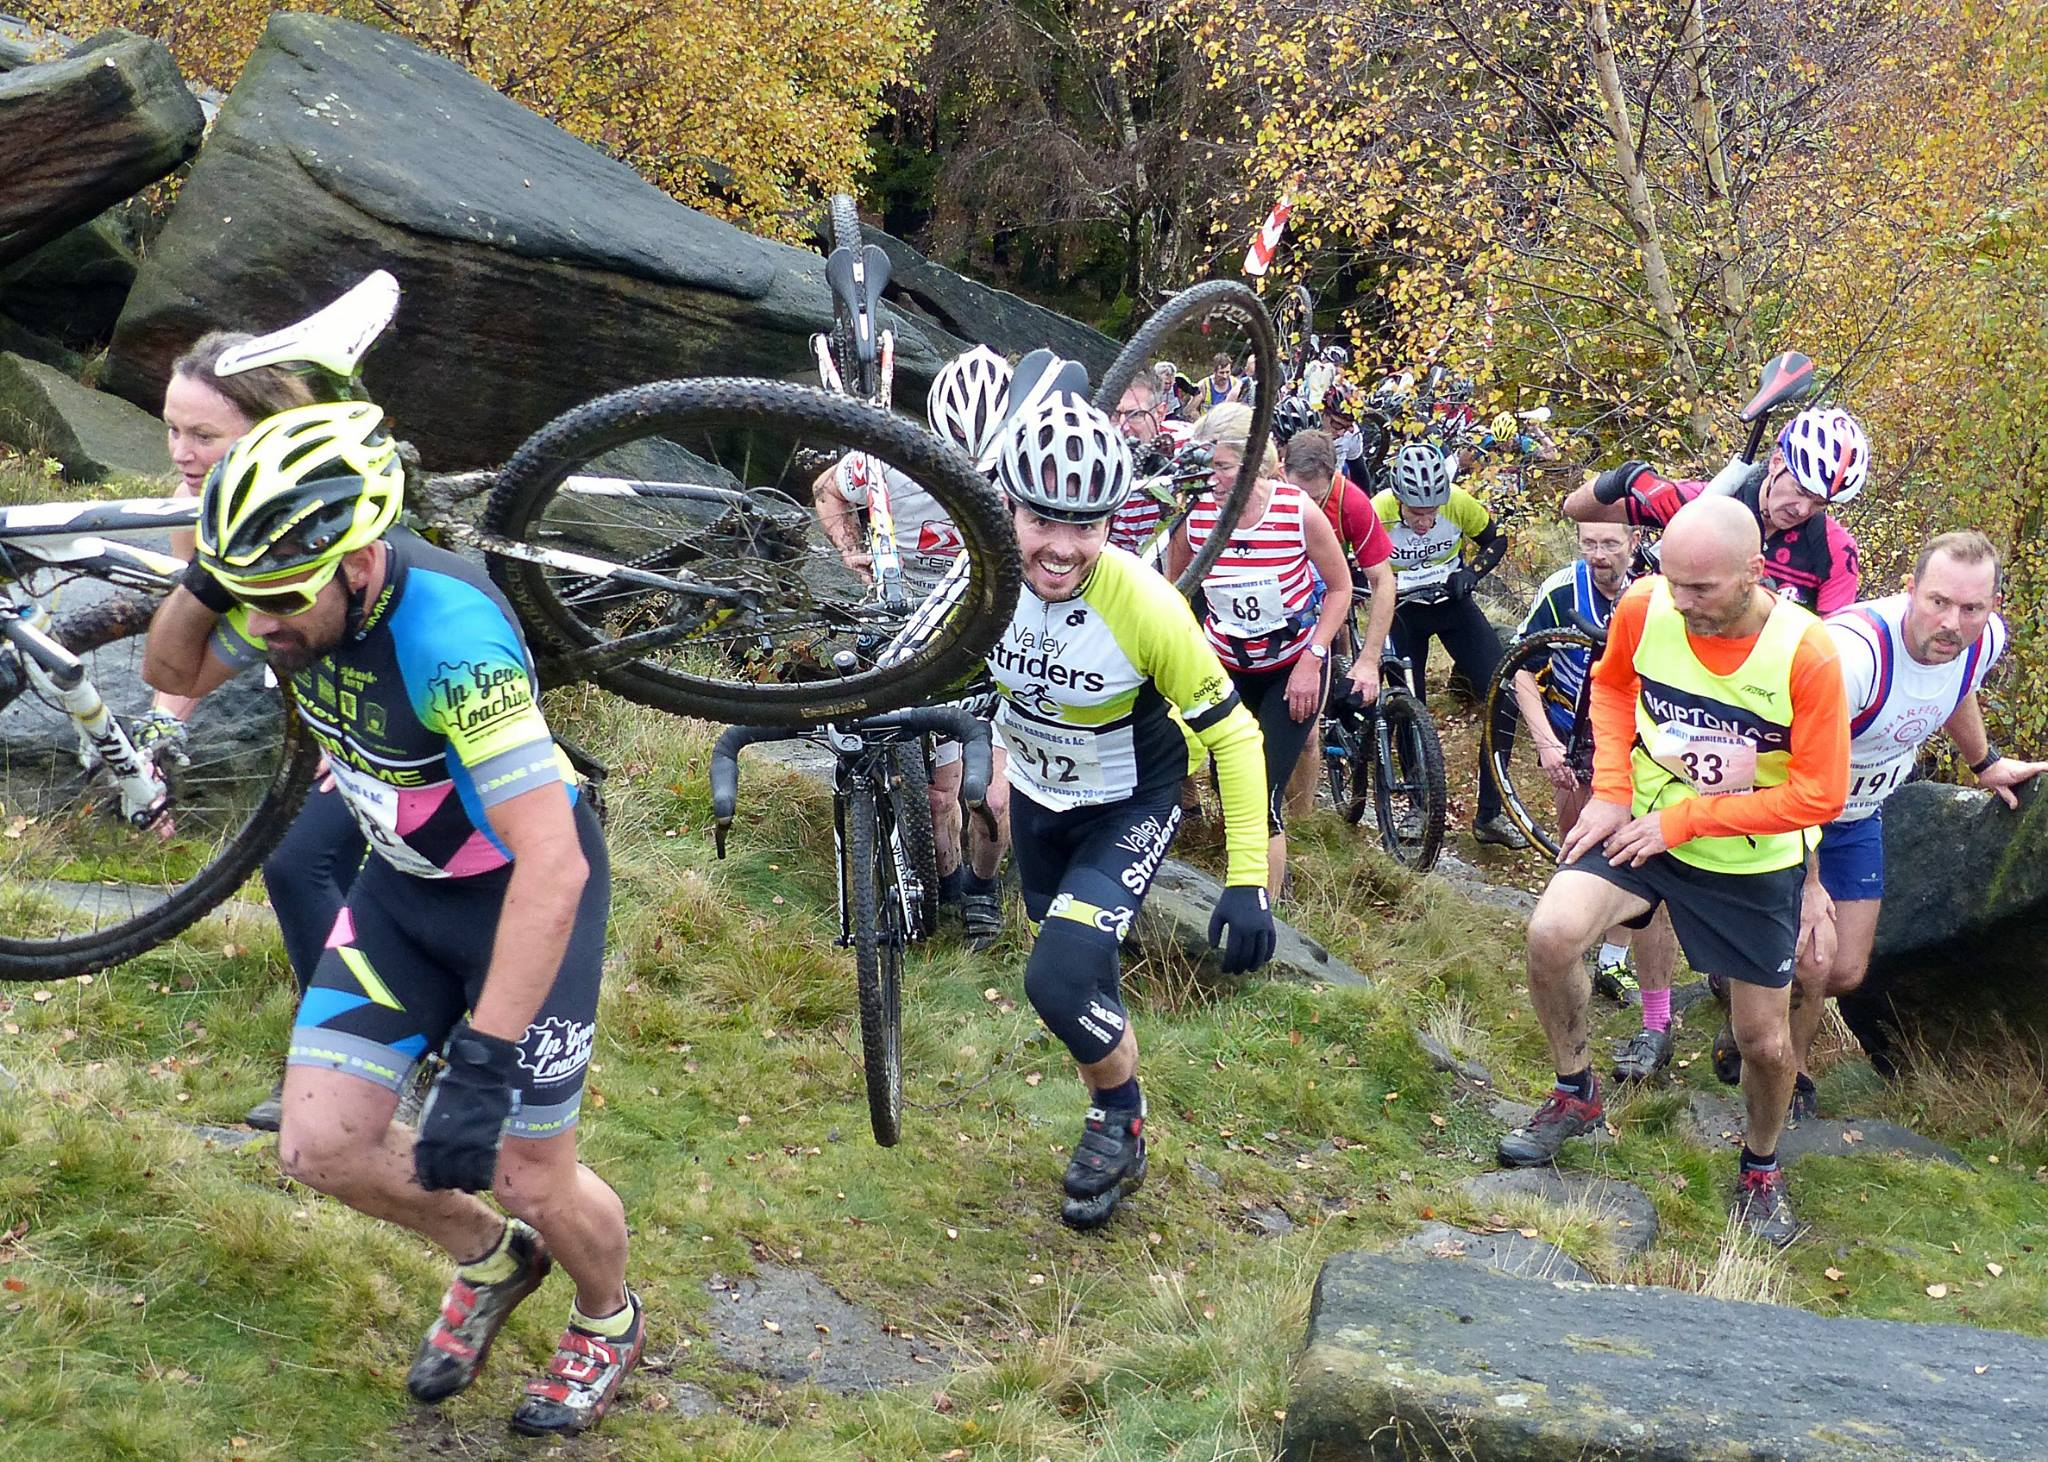 Harriers V Cyclists 2016 – Results